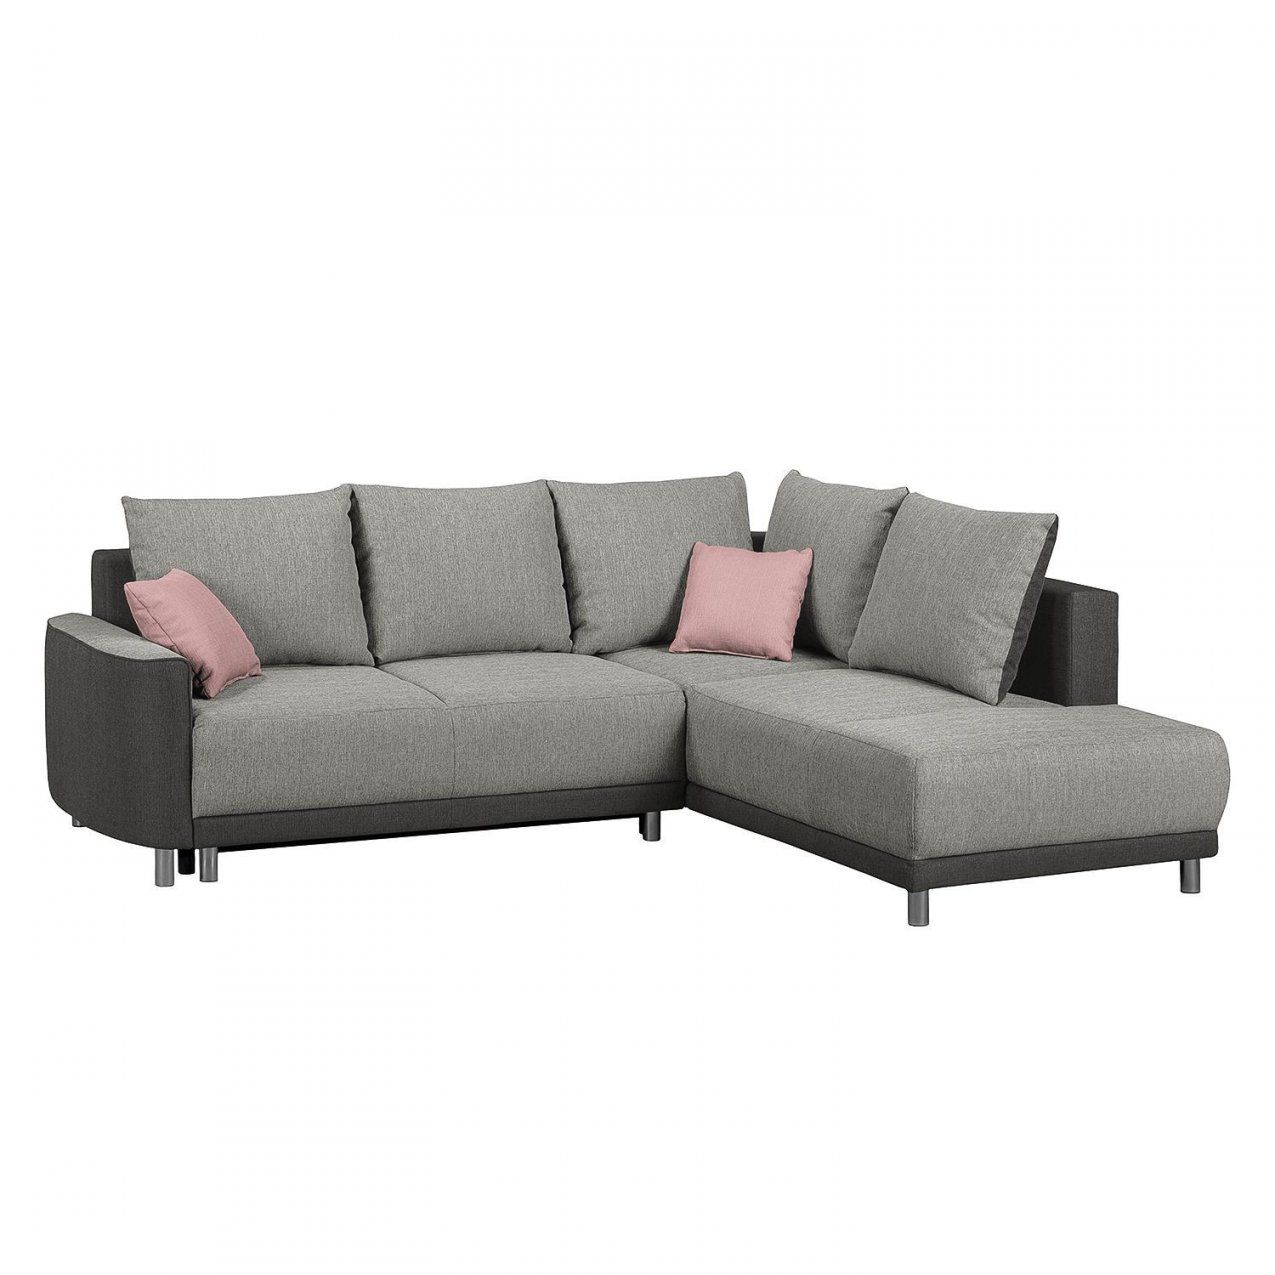 Luxury Hussen Ecksofa Ottomane Links Sofa Hussen Stretch Schn Husse von Hussen Ecksofa Ottomane Links Photo